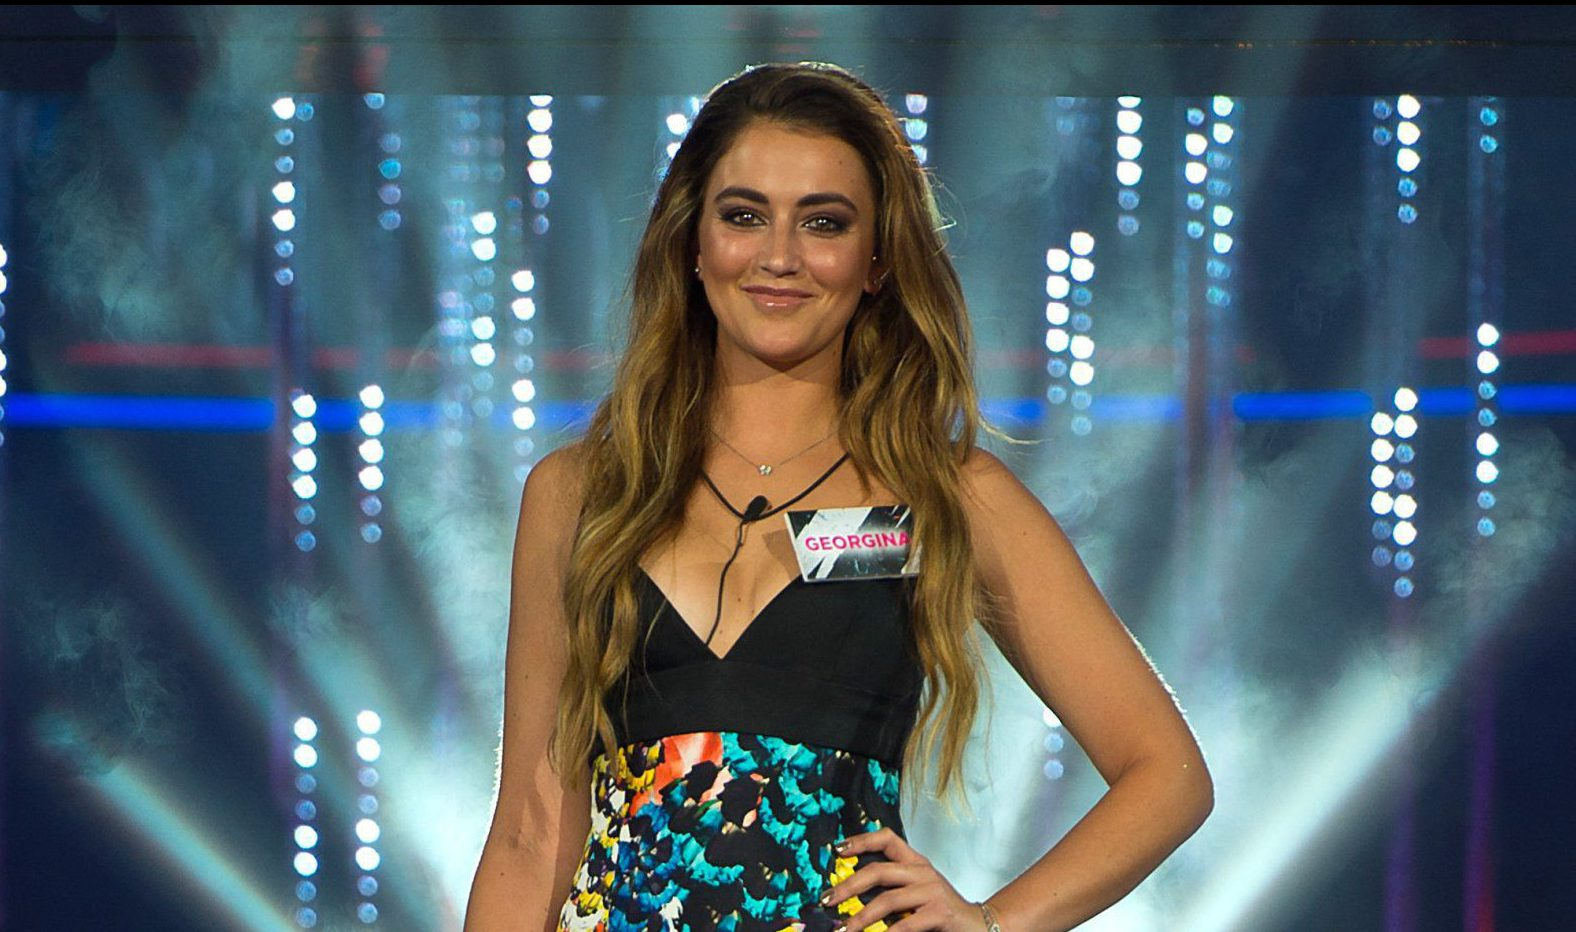 2016 Big Brother star Georgina Leigh Cantwell selected to open New York Fashion Week runway